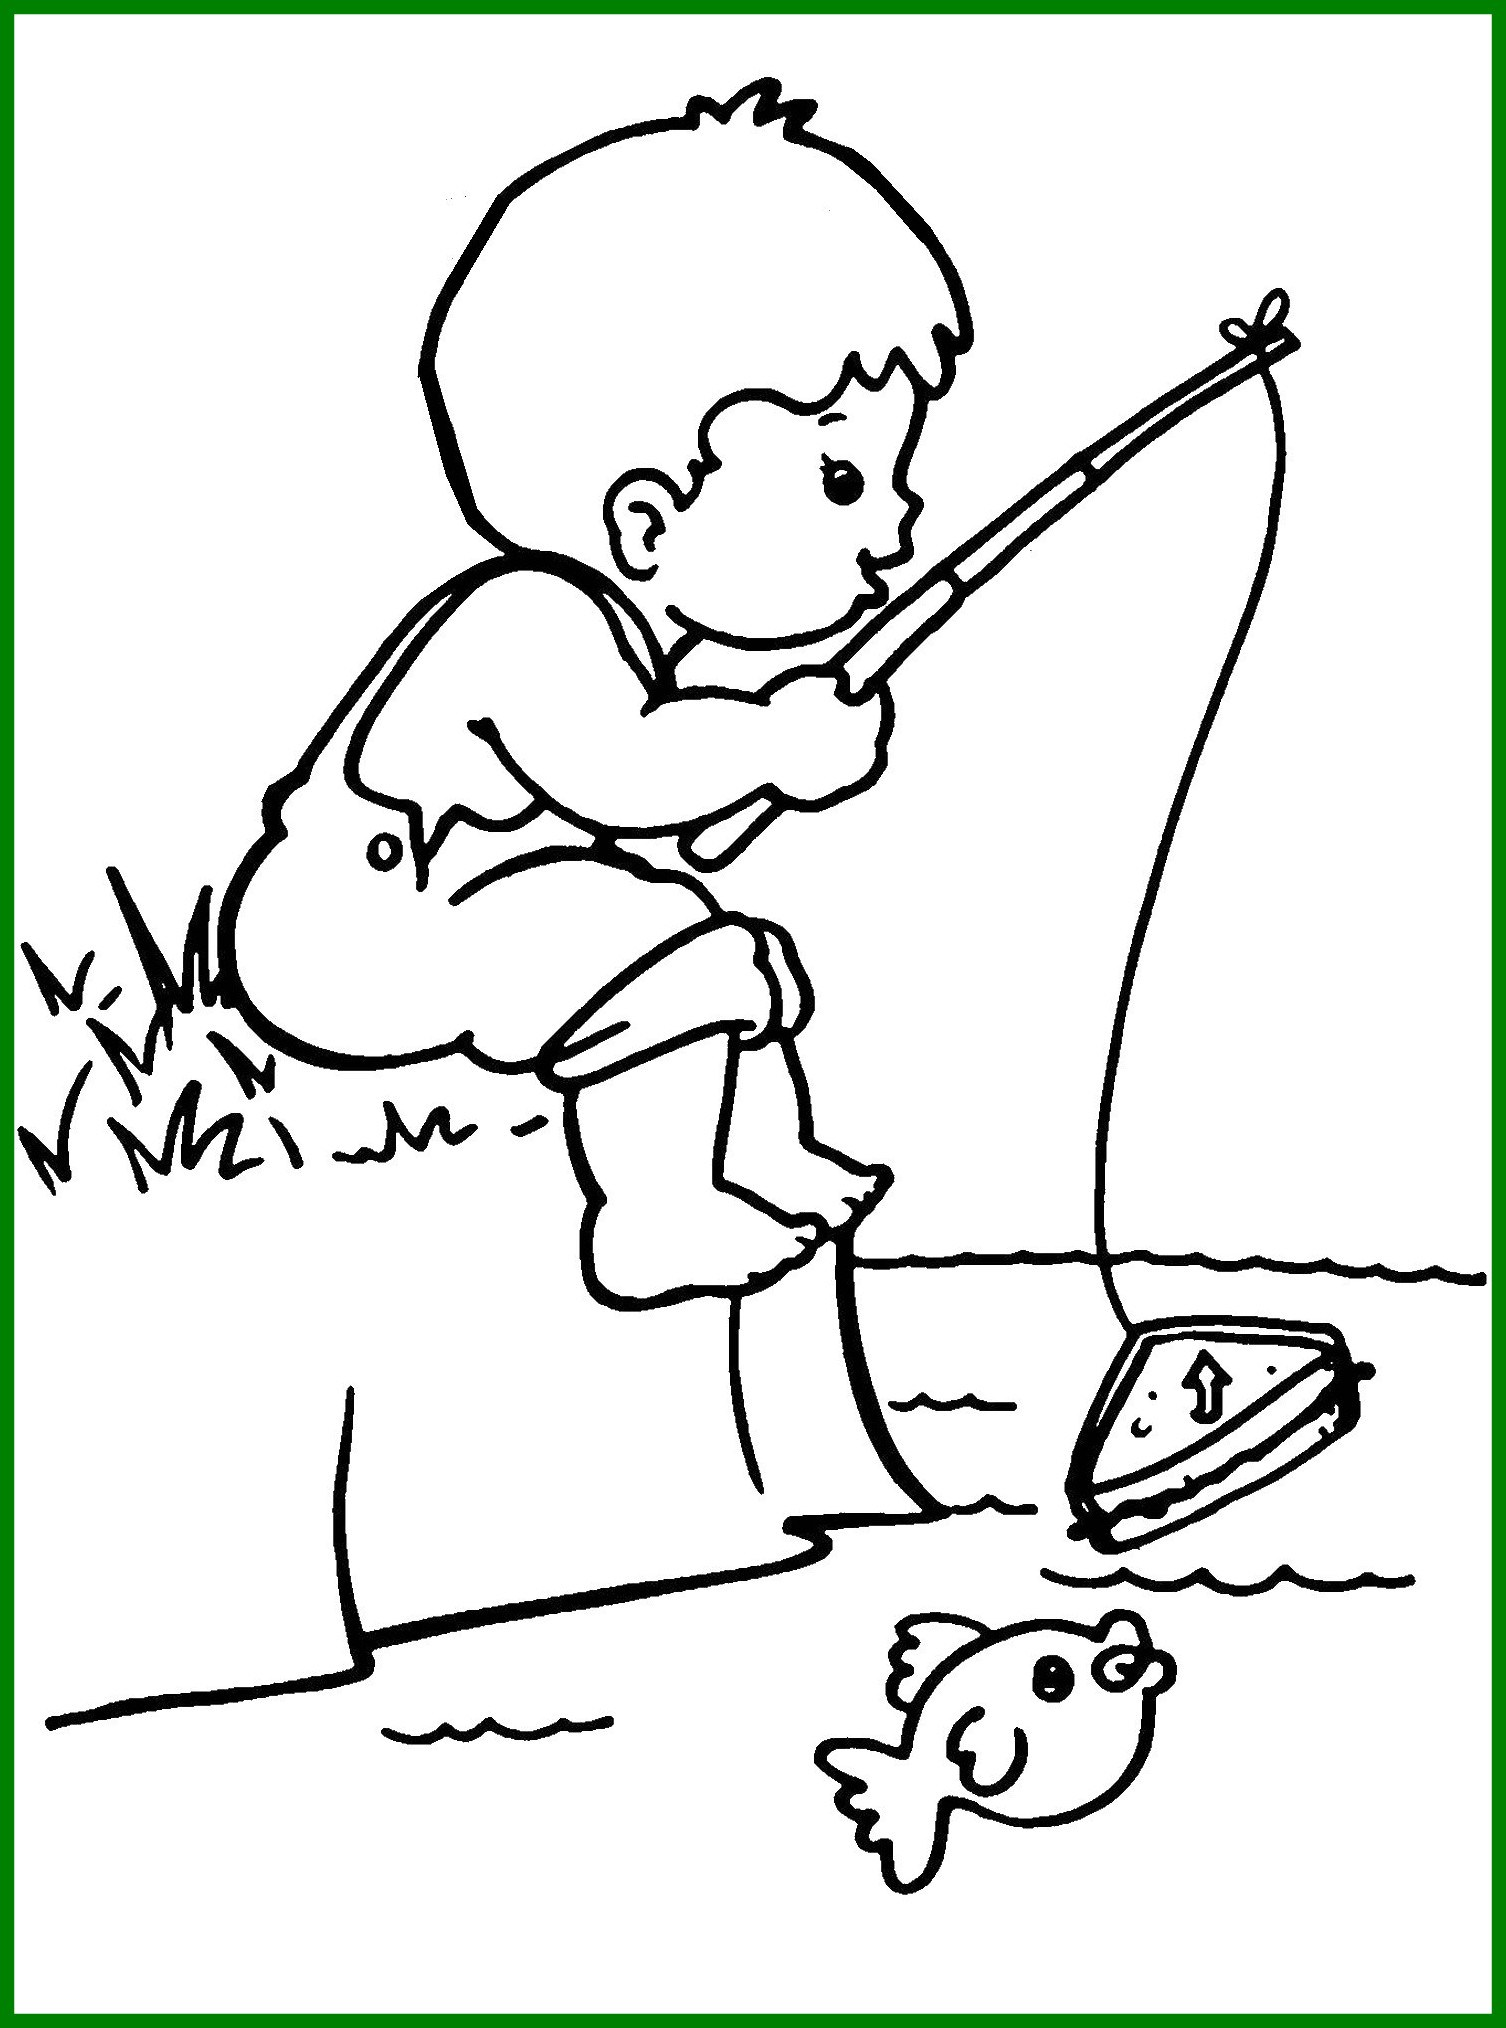 1506x2028 Awesome Printable Boy Coloring Pages For Kids Image Of Inspiration